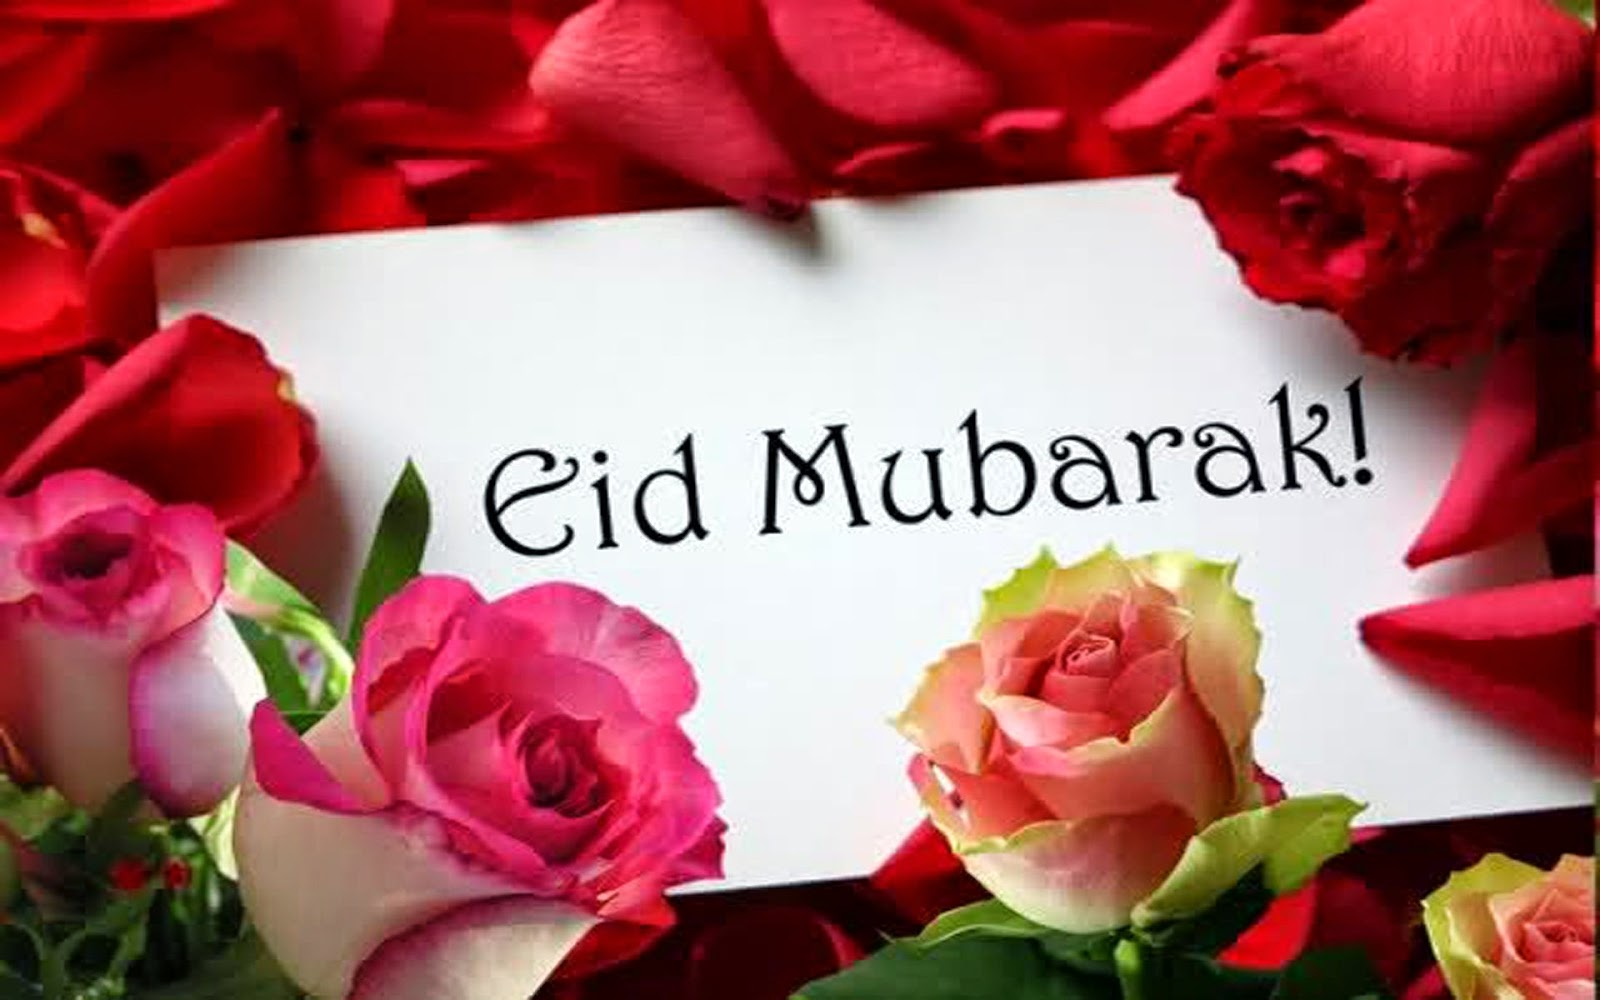 Eid wishes with flowers wall paper entertainment magazine eid wishes with flowers wall paper m4hsunfo